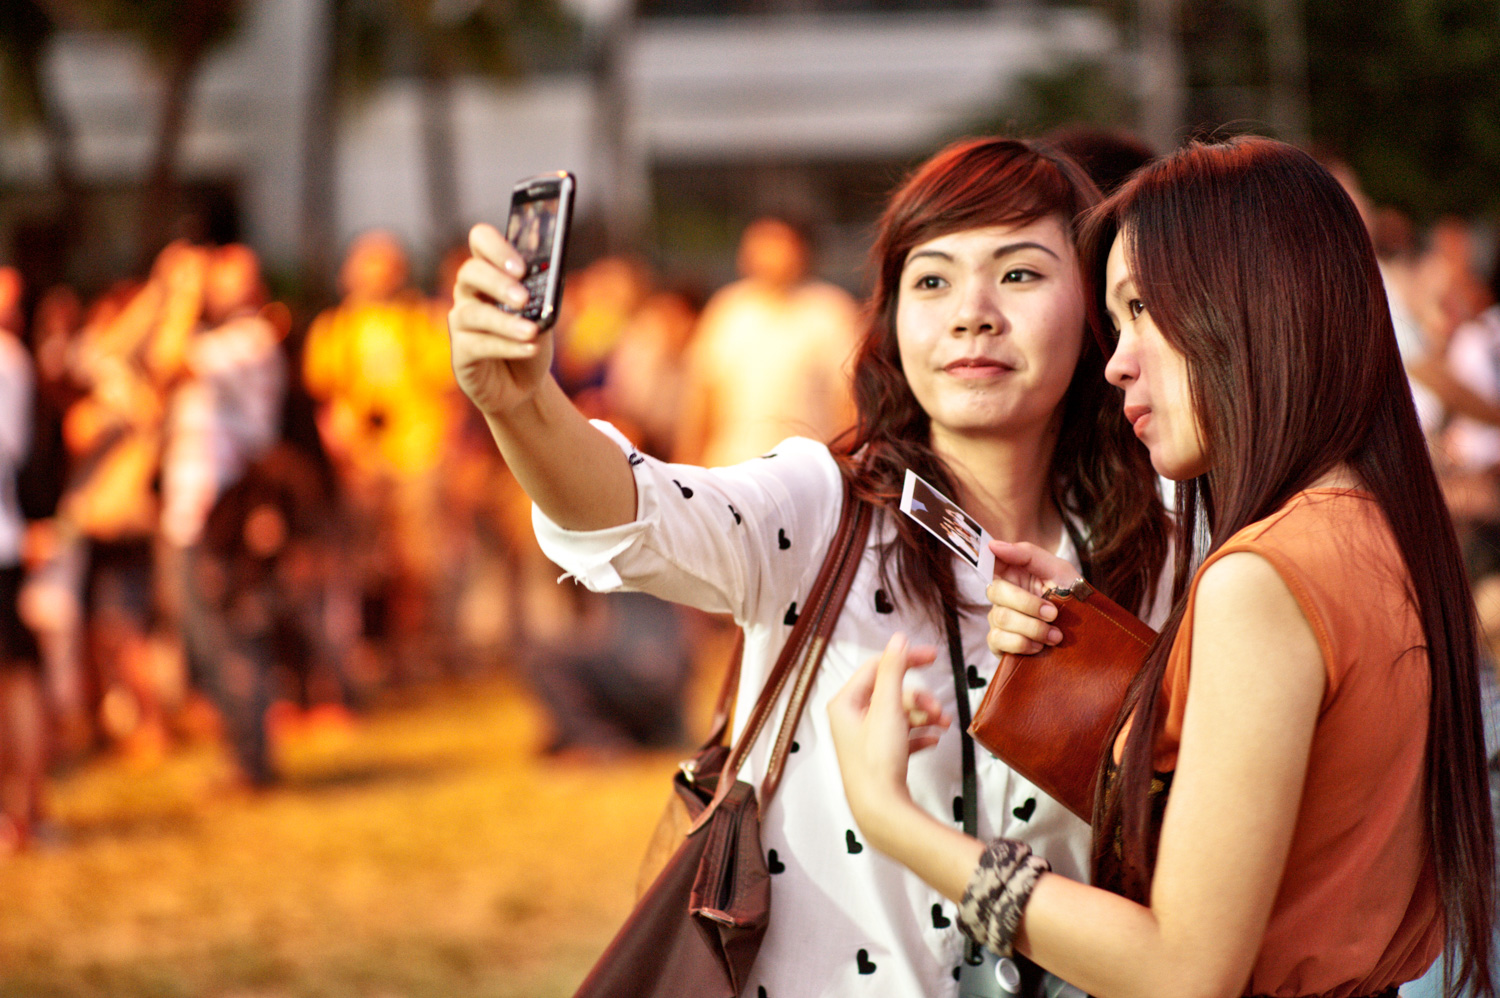 Photographer at an Outdoor Event taking a selfie - Pros and Cons of Upgrading from a Phone to a Real Camera